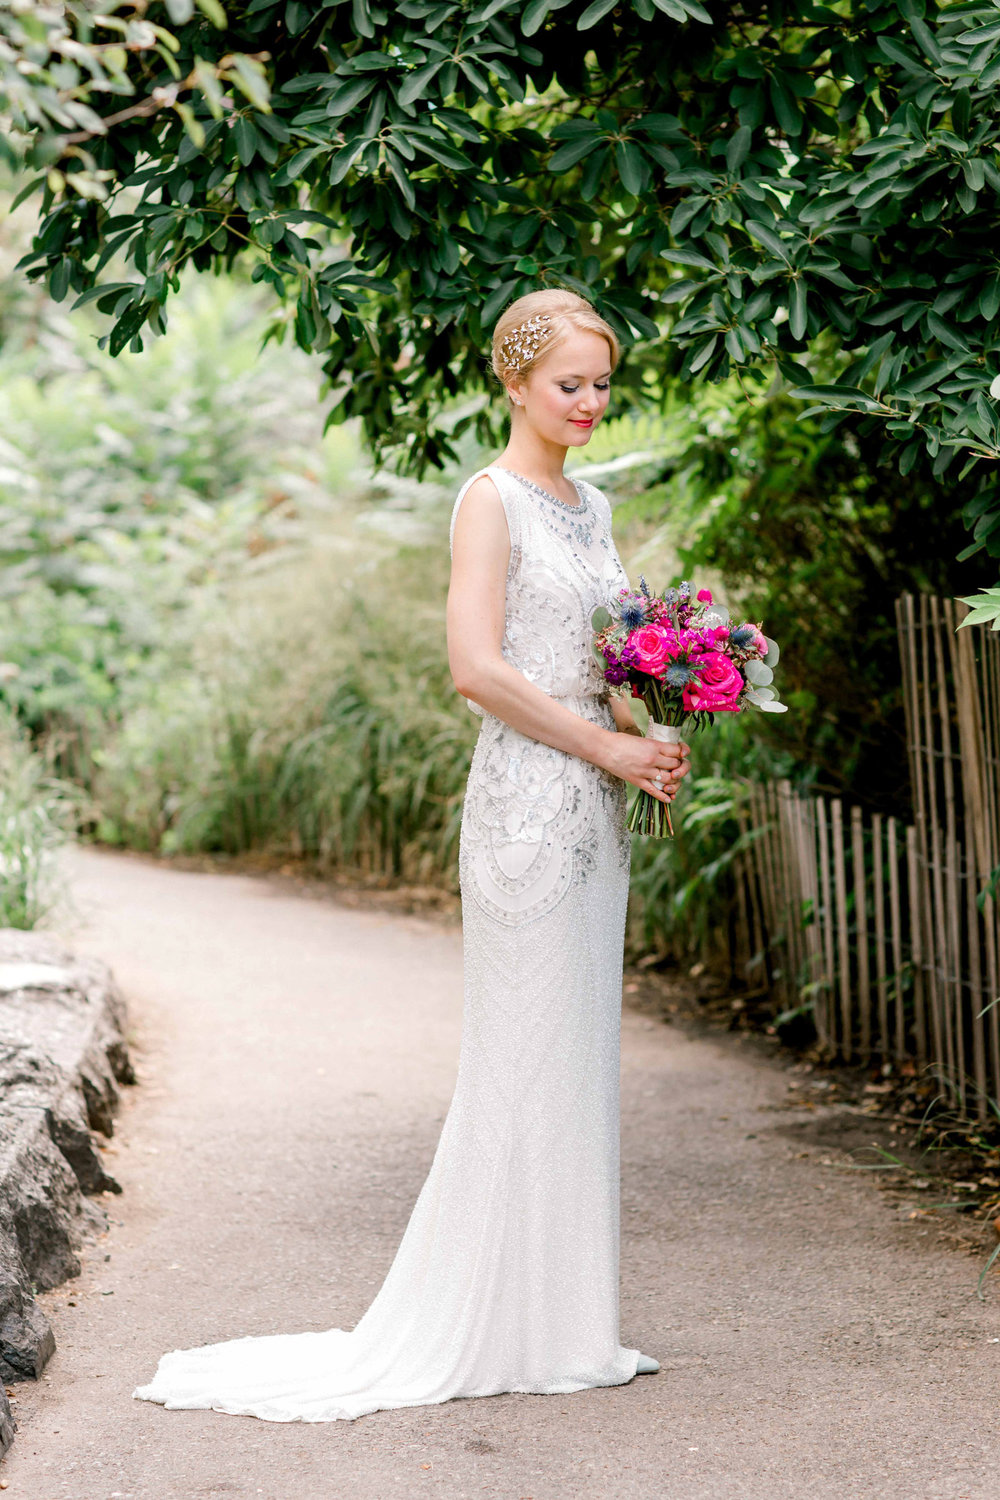 17_Kasey_Paul_Brooklyn_Winery_Wedding_065.jpg